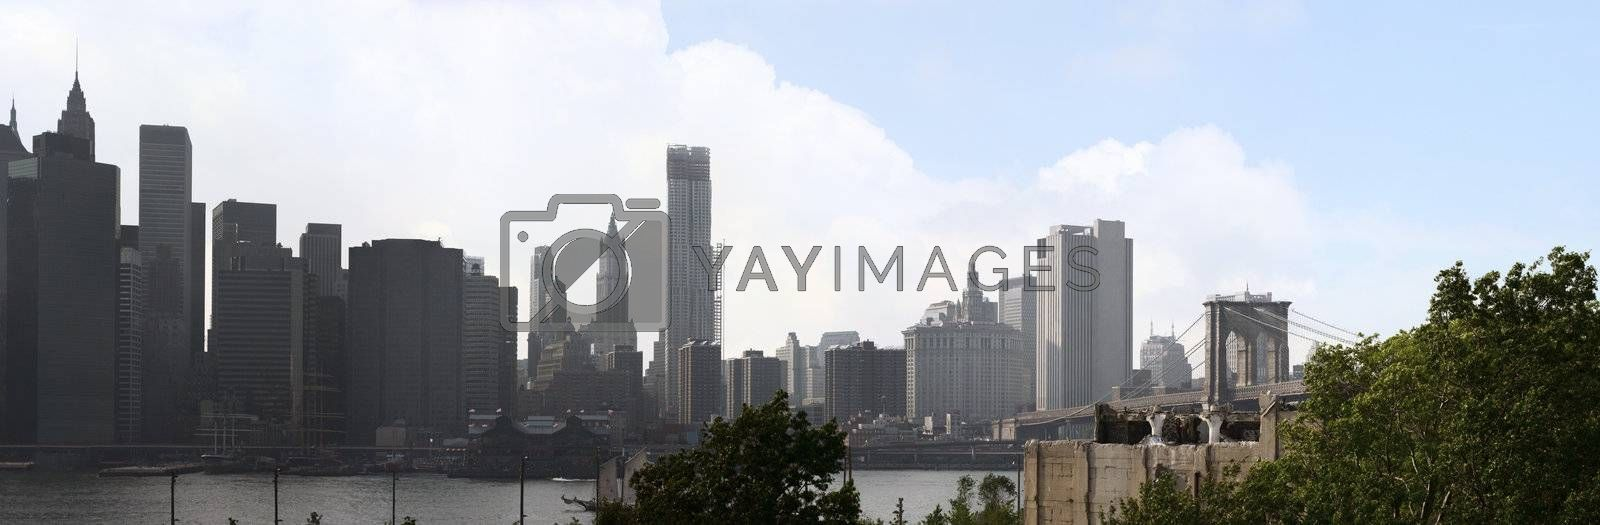 Manhattan NYC Skyline Panorama by graficallyminded